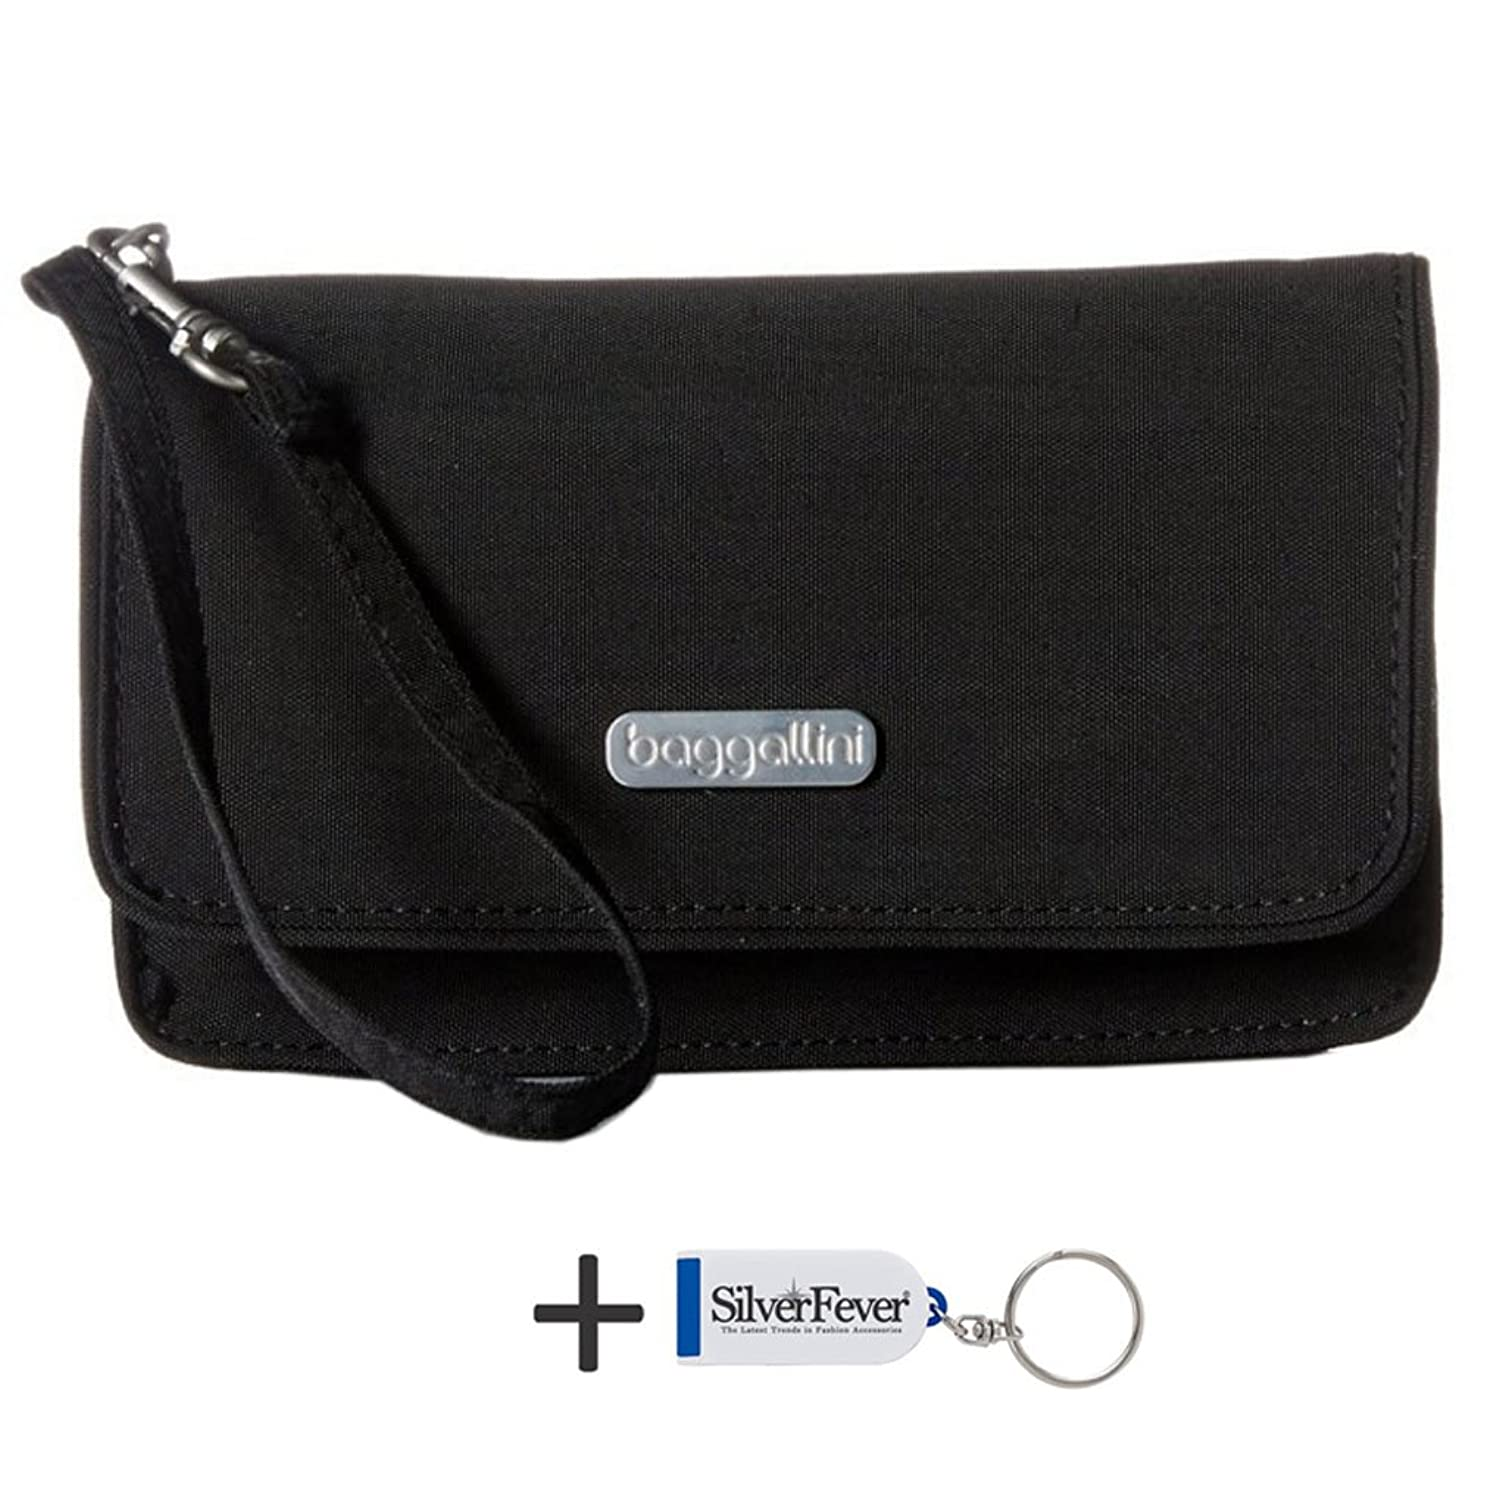 Baggallini RFID Wristlet Wallet with Flap and Key Chain